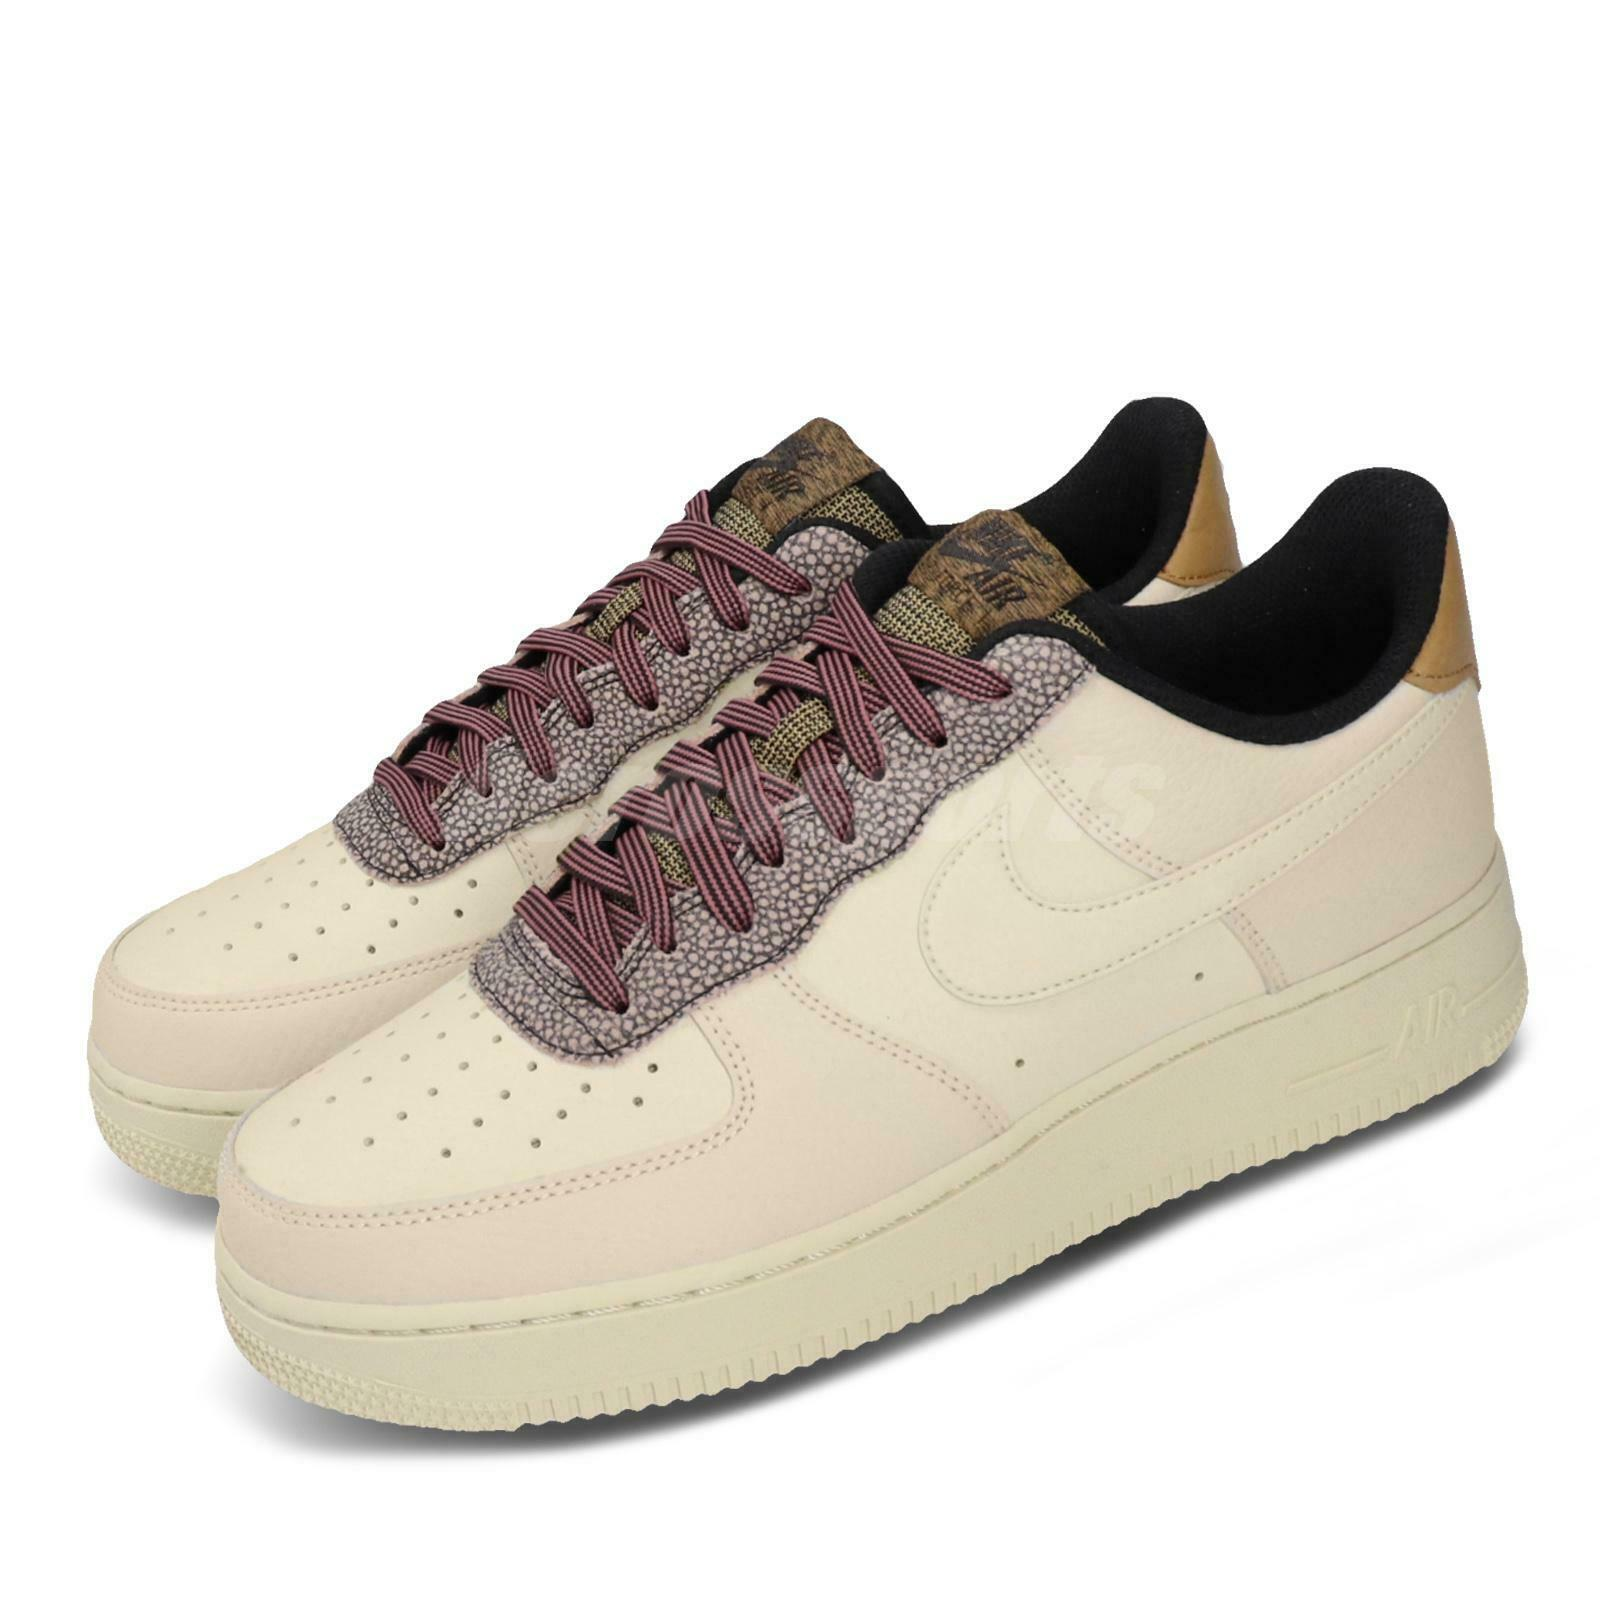 Nike Air Force 1 Low 07 LV8 Suede AA1117-200 Size 12 UK